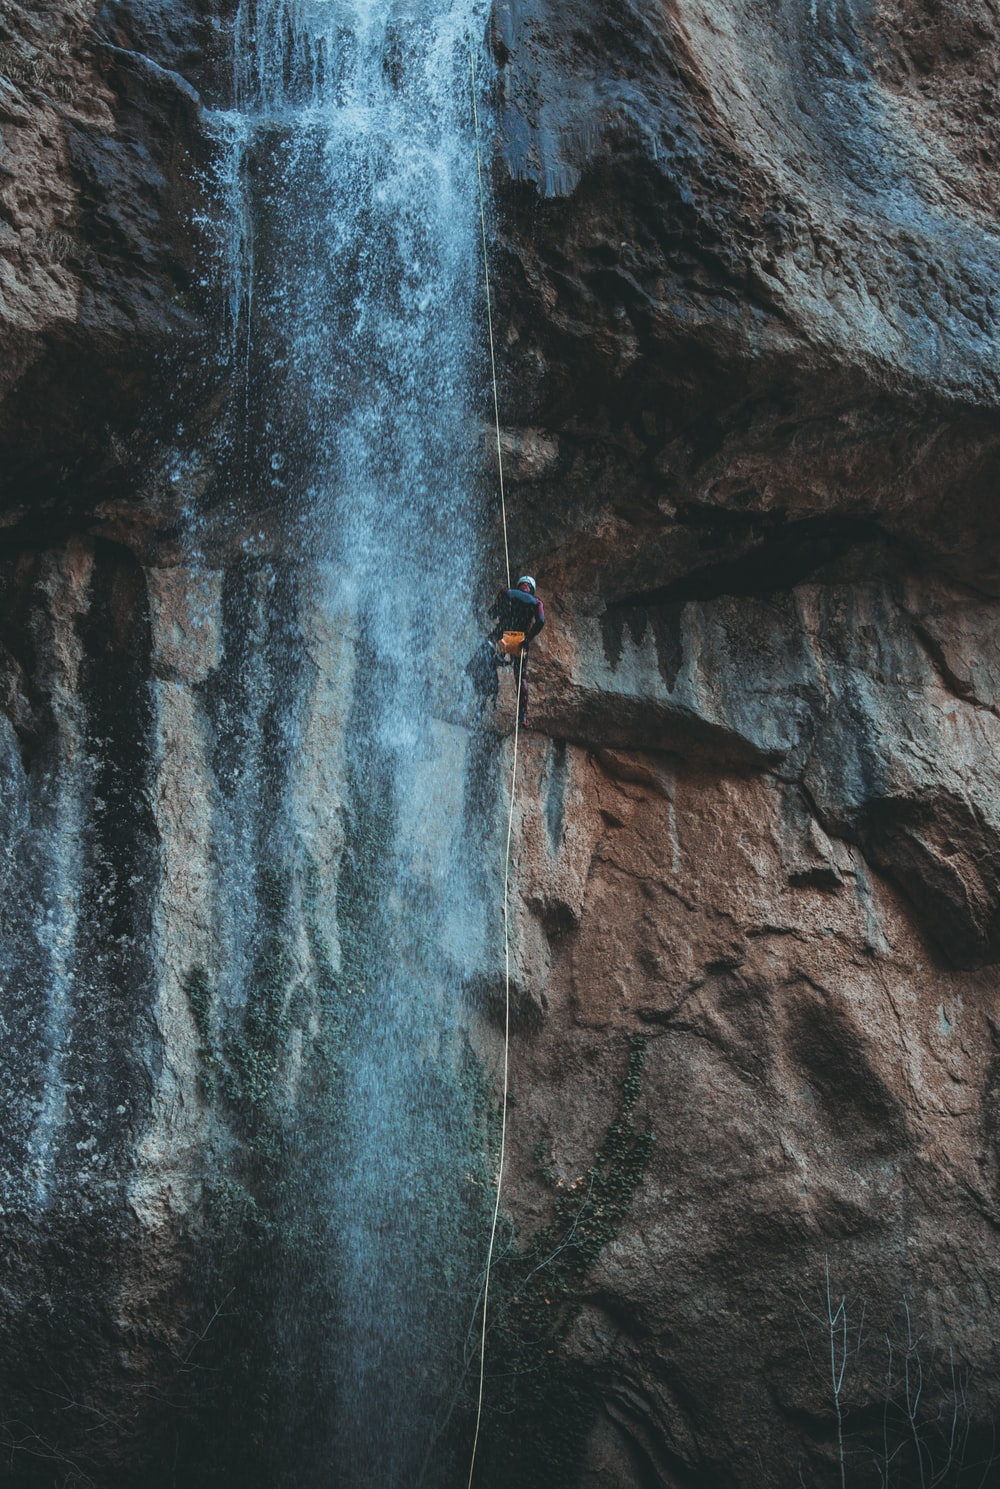 person in blue jacket climbing on rocky mountain during daytime